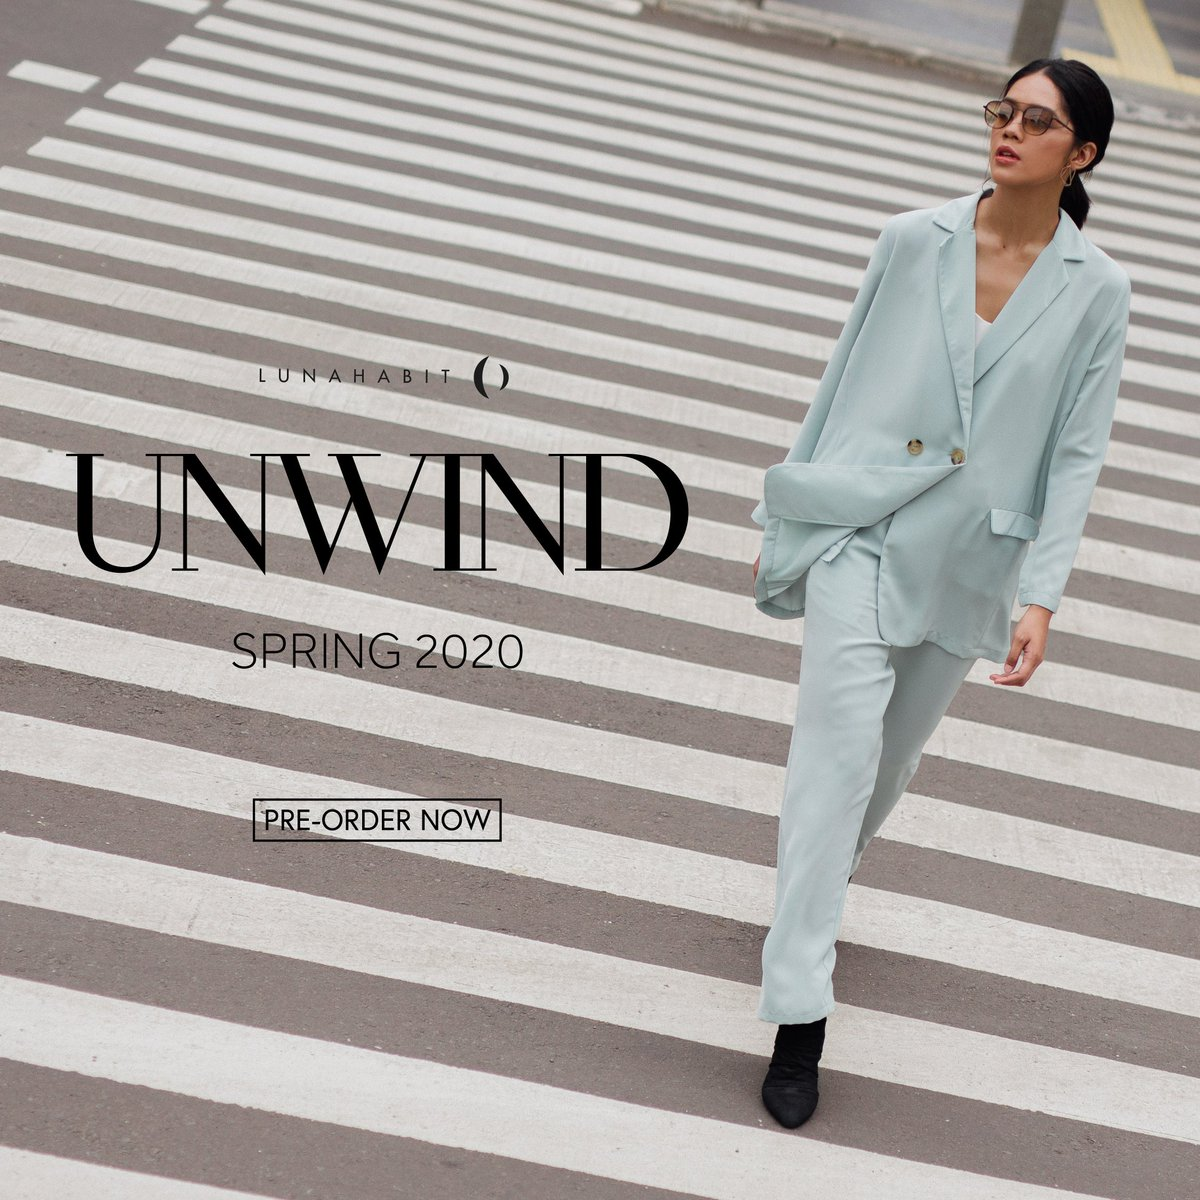 Unwind represents a style to express your good feeling with loose cutting and bright colors and fits in your day to day look. Let's take your time to relax and chill in this challenging time.   Pre-order NOW at   #Lunahabit #LHUnwind #Localbrand